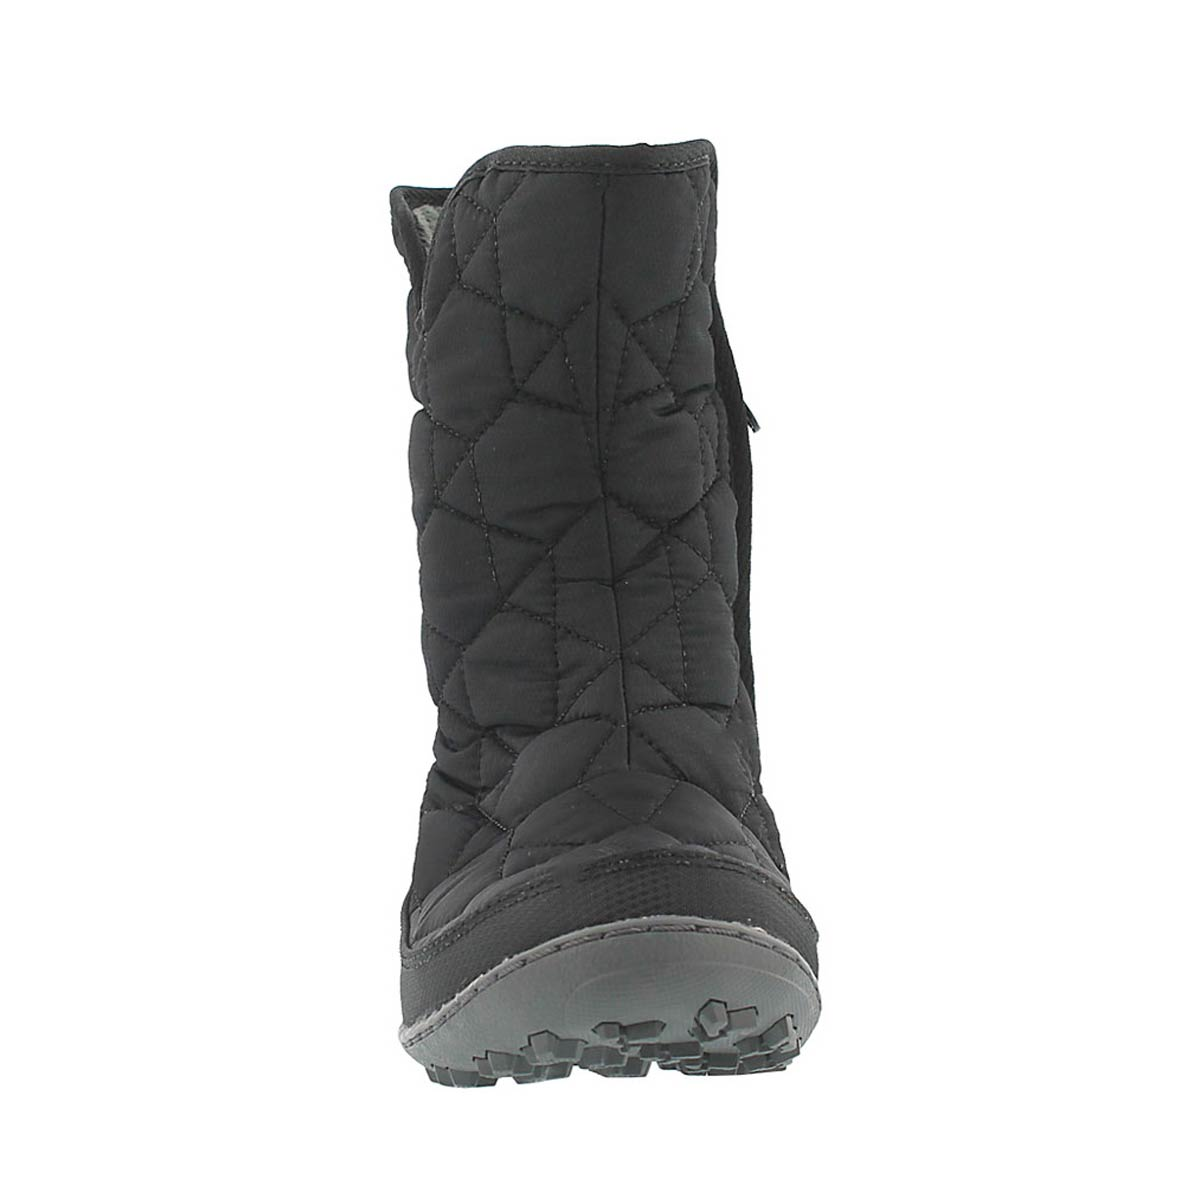 Grls Minx Slip black winter boot